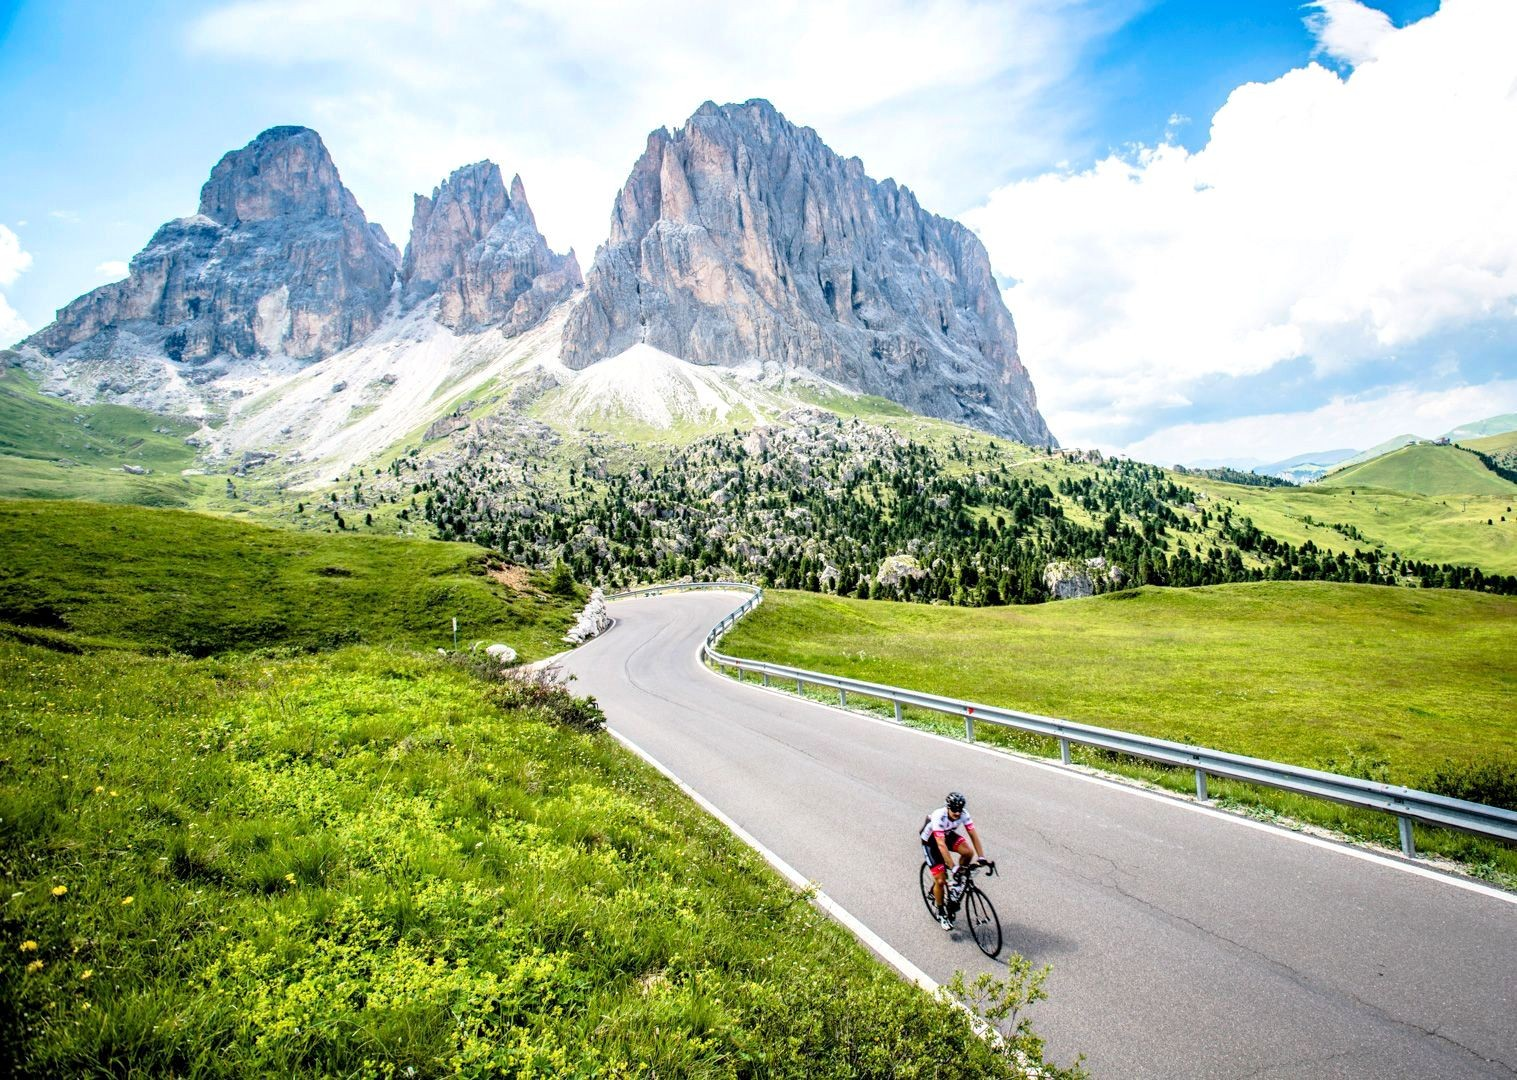 dolomites-guided-road-cycling-holiday-in-italy.jpg - Italy - Dolomiti Discoverer - Guided Road Cycling Holiday - Road Cycling